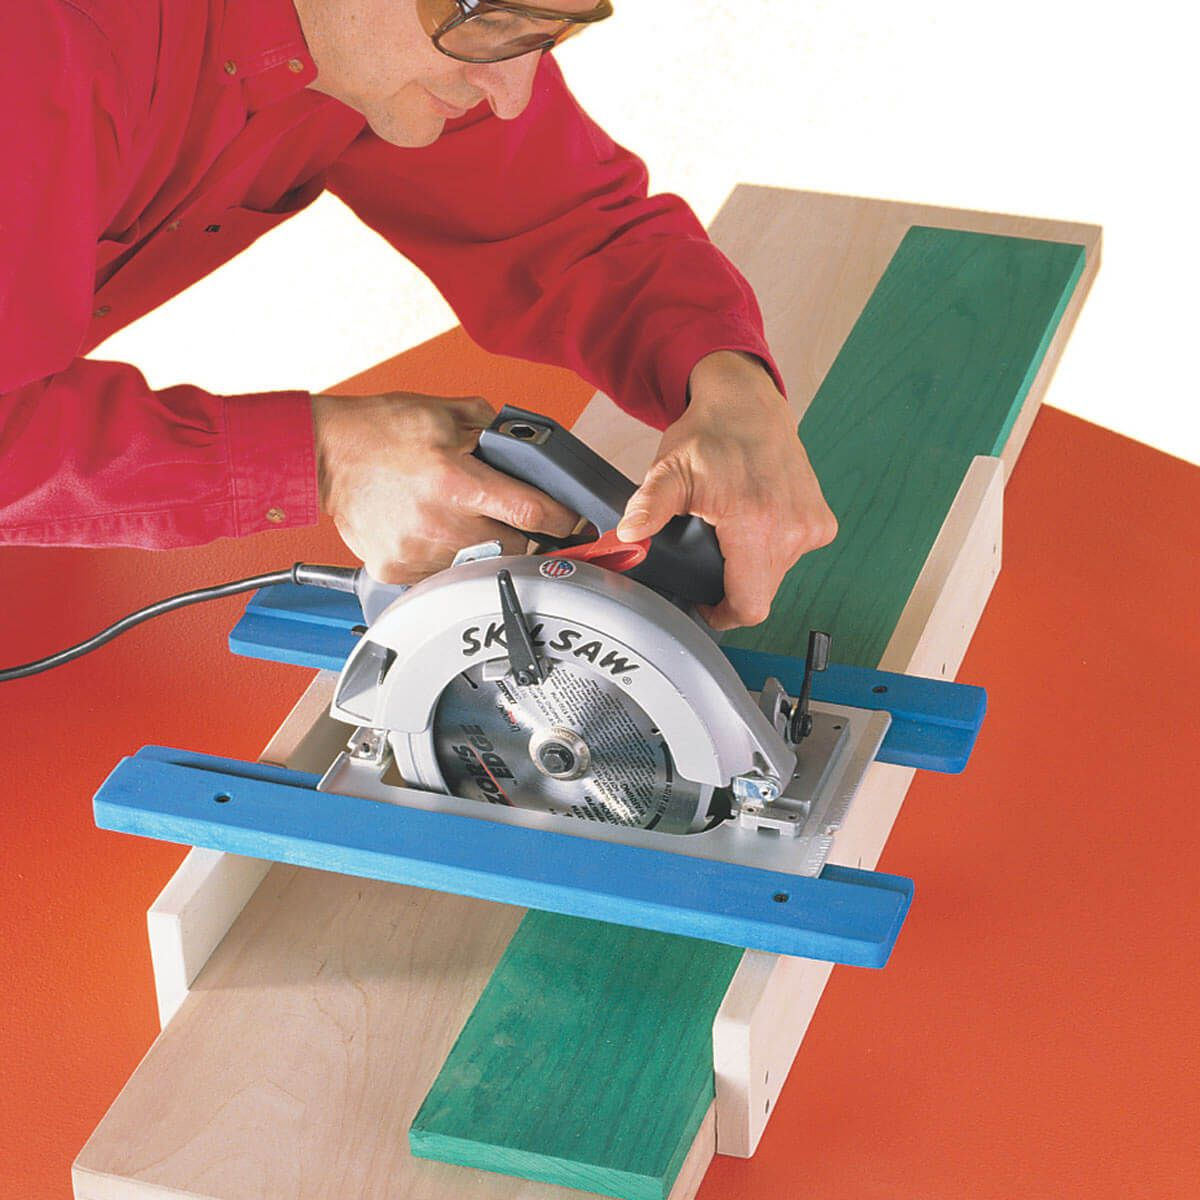 Seat Of The Pants Radial Arm Saw Radial Arm Saw Woodworking Woodworking Jigs